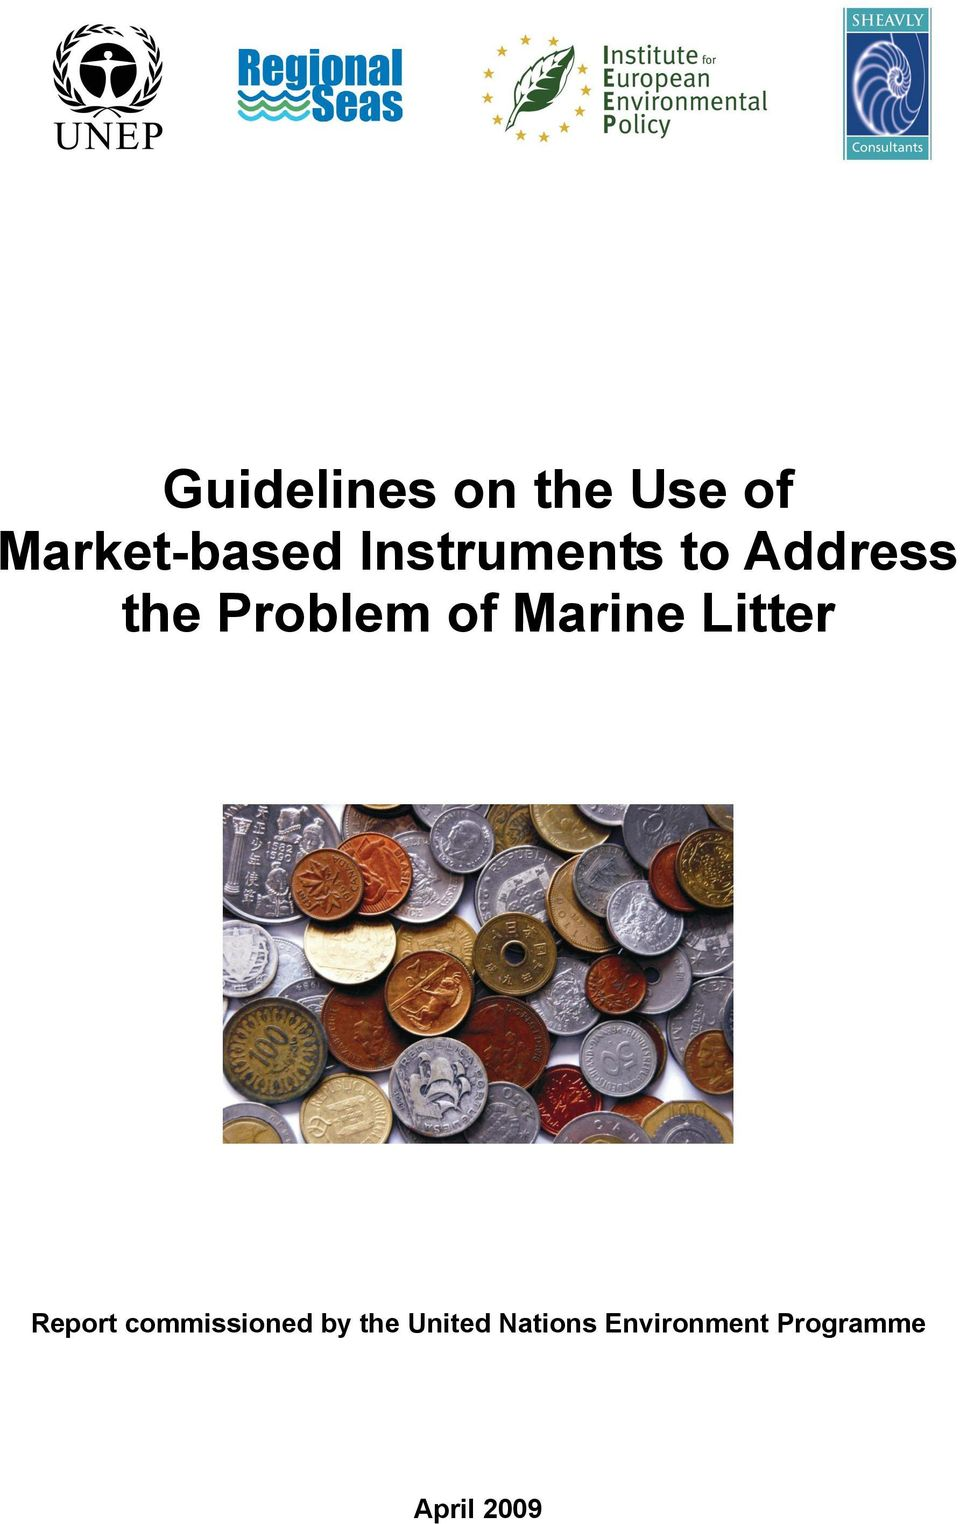 Marine Litter Report commissioned by the